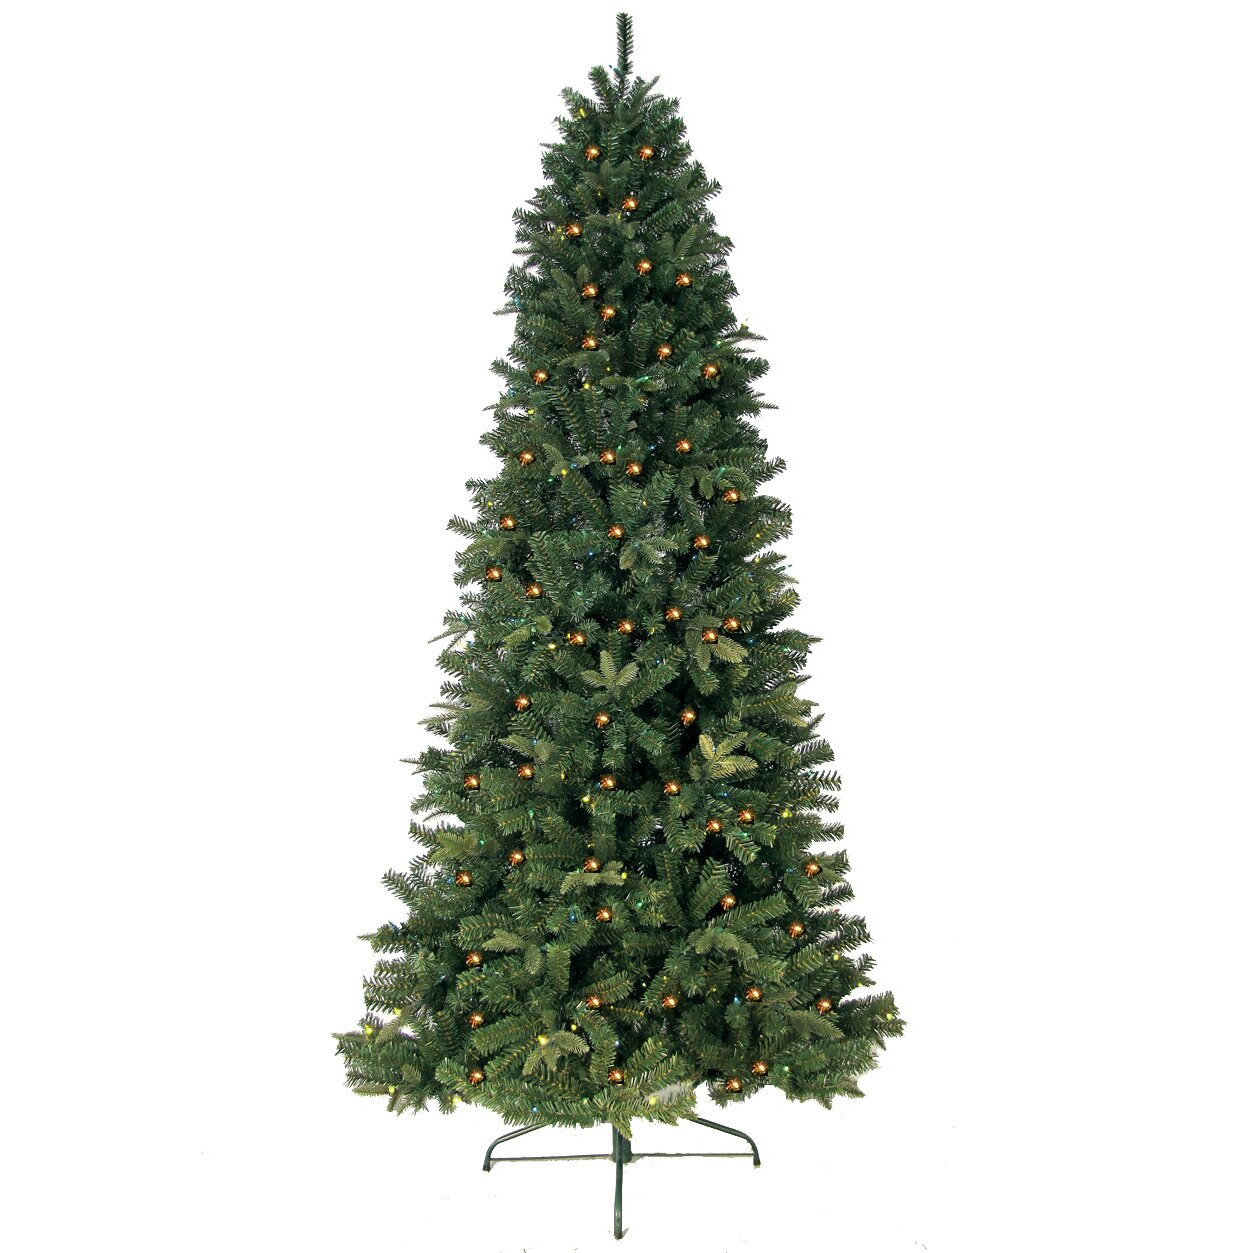 Next Slim Christmas Tree: 7' Green Eastwood Fir Slim Artificial Christmas Tree With